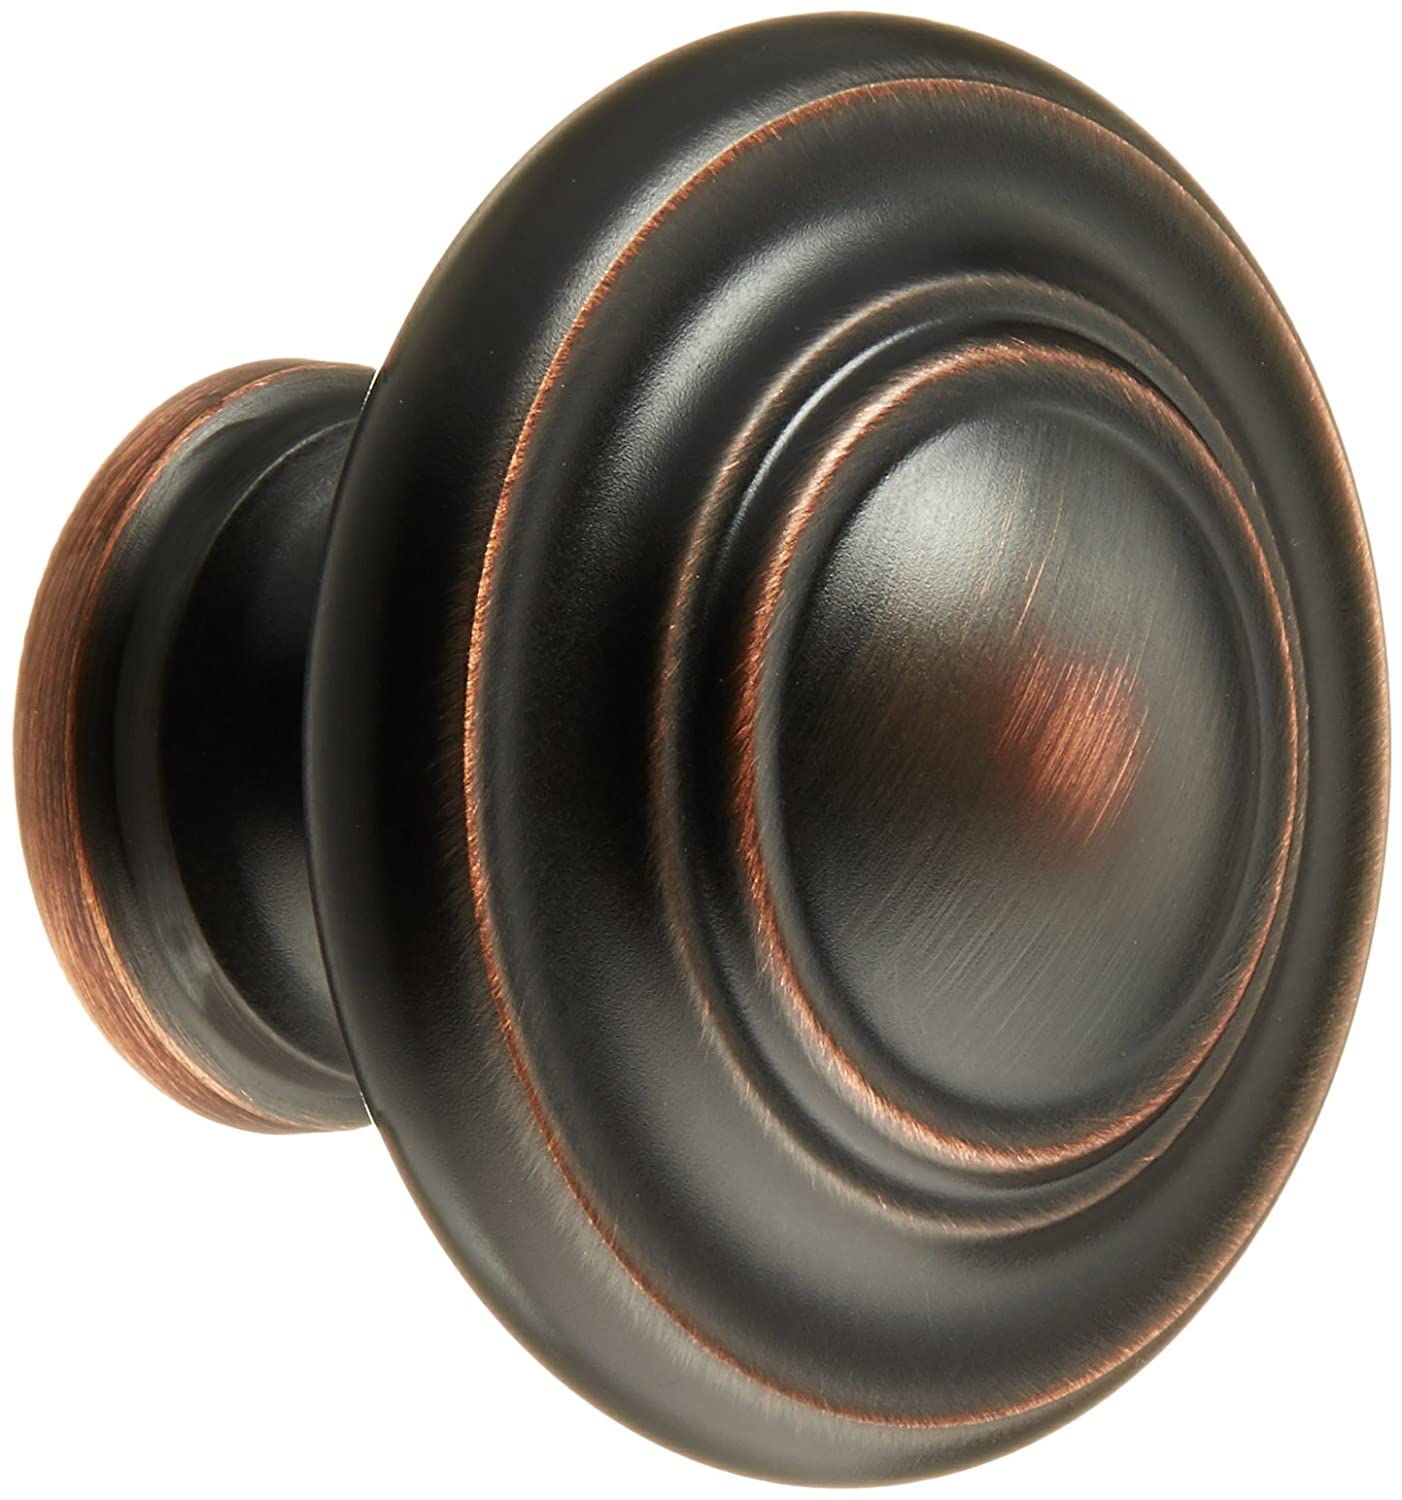 Amerock BP1586-2-ORB Inspirations 3-Ring Large Oversized 1-3/4 Inch Diameter Oil Rubbed Bronze Round Cabinet Hardware Knob/Bi-fold Closet Door Knob - 10 Pack